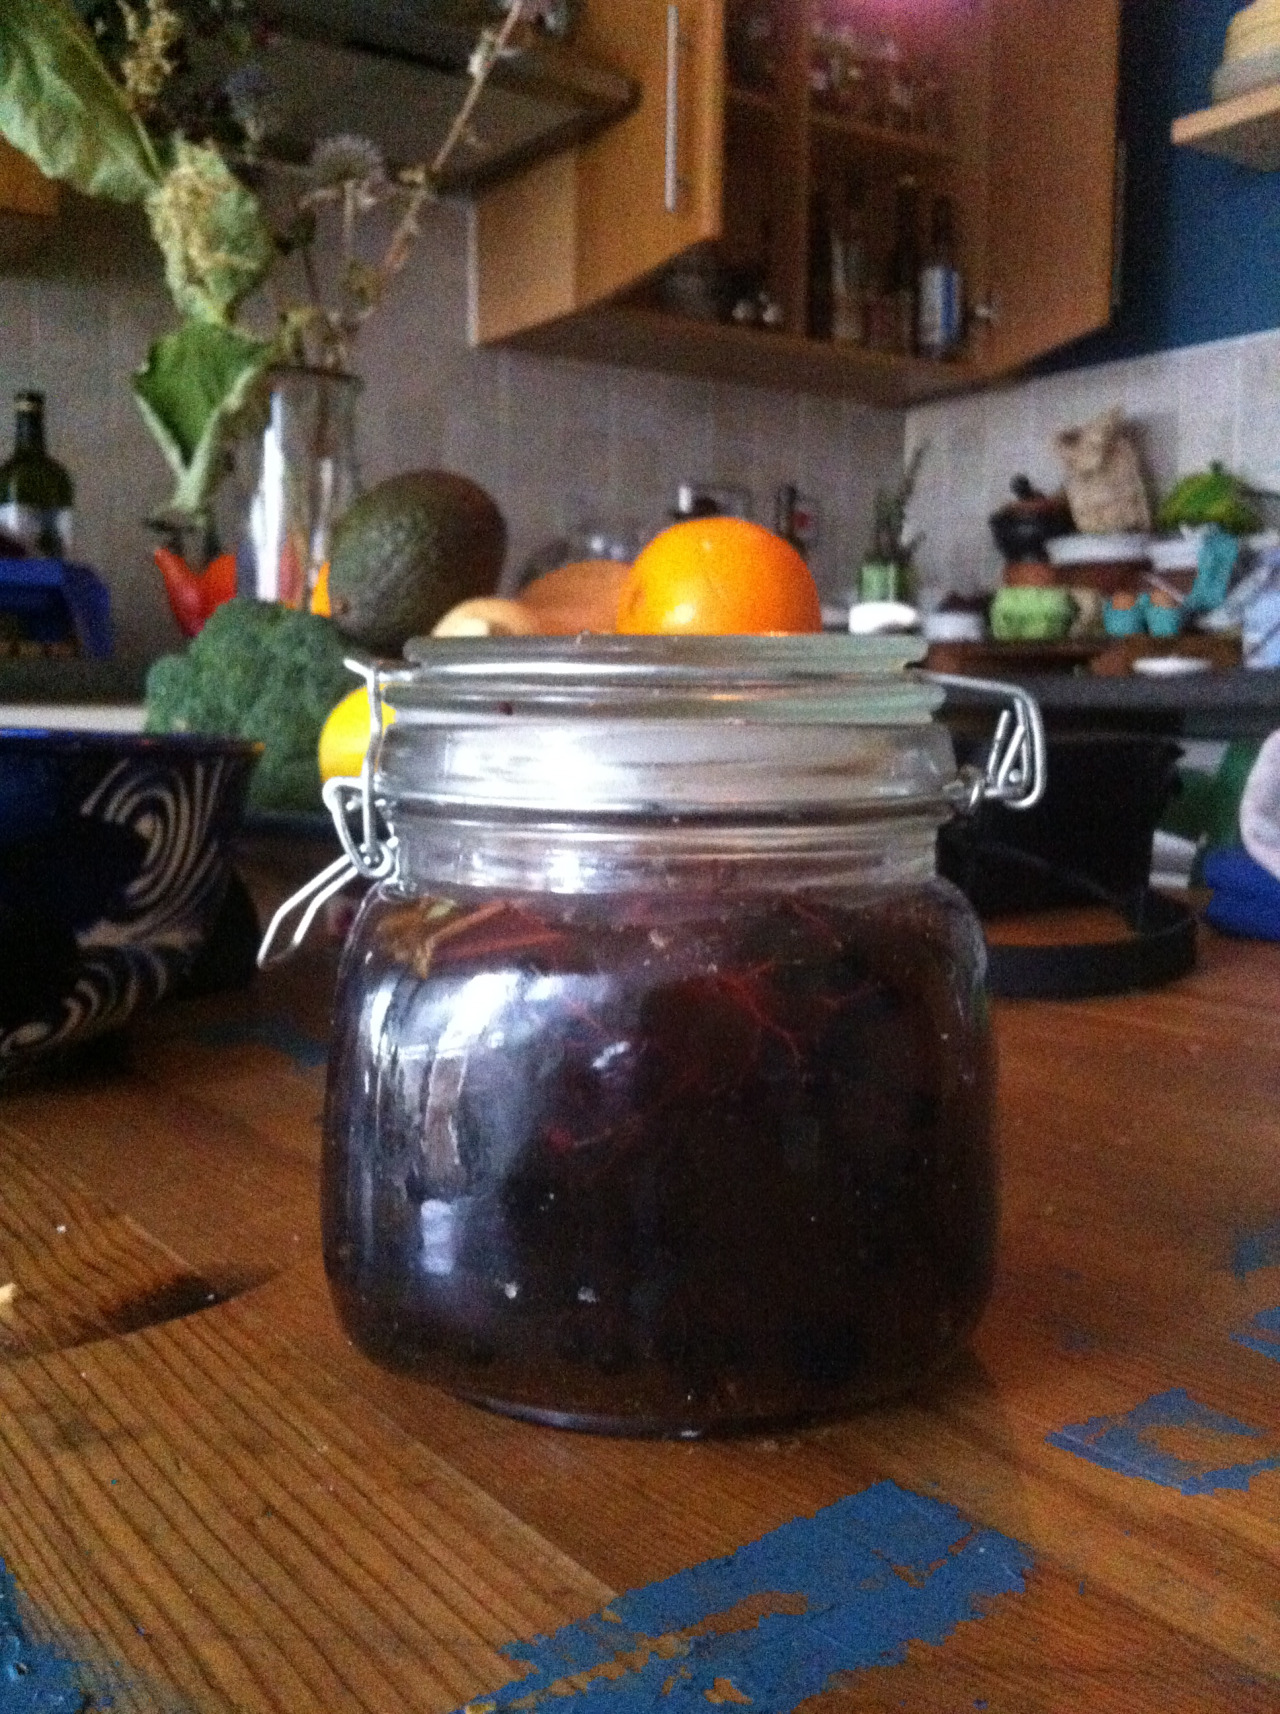 Elderberries, blackberries topped up with apple cider vinegar. I will let you know how this one turns out.